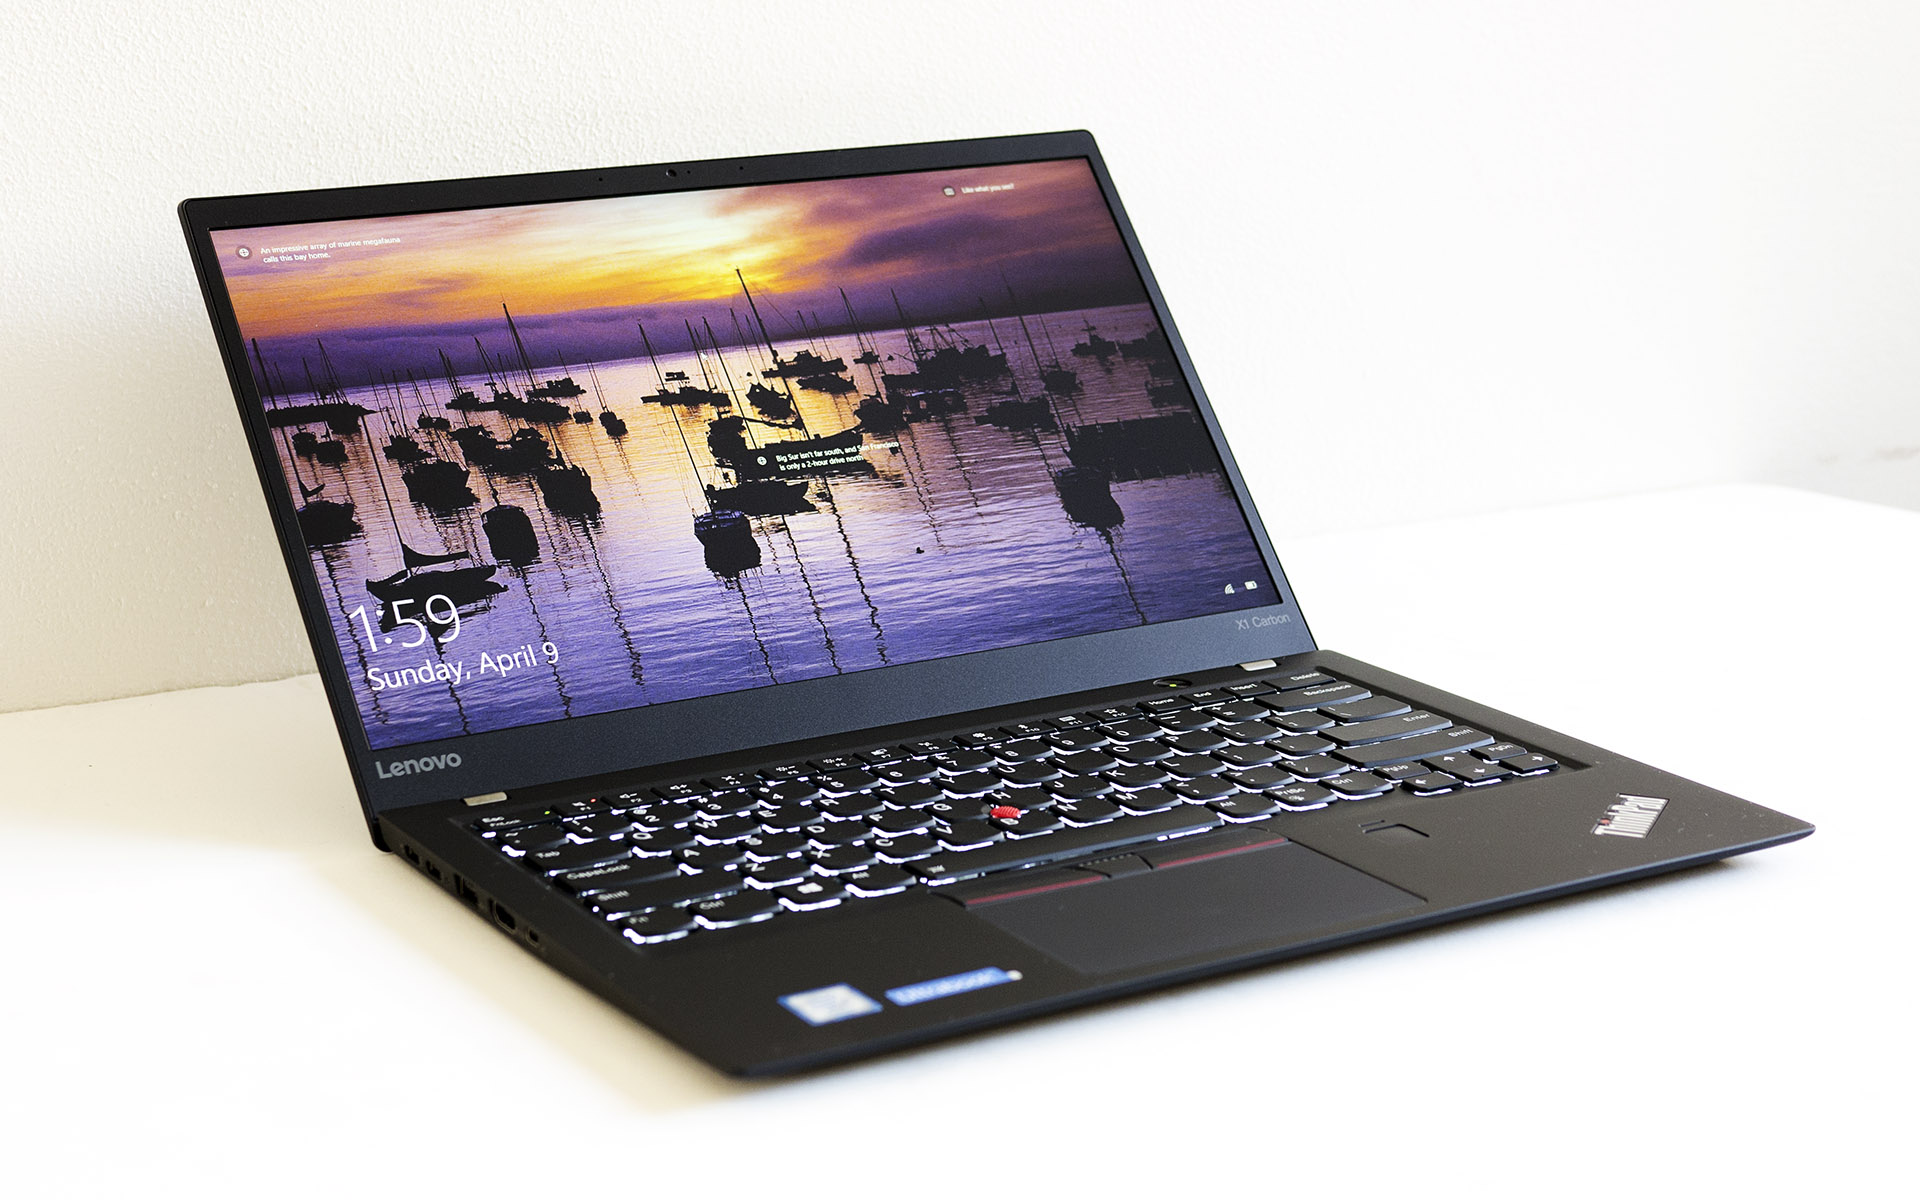 Thinkpad X1 Carbon I7